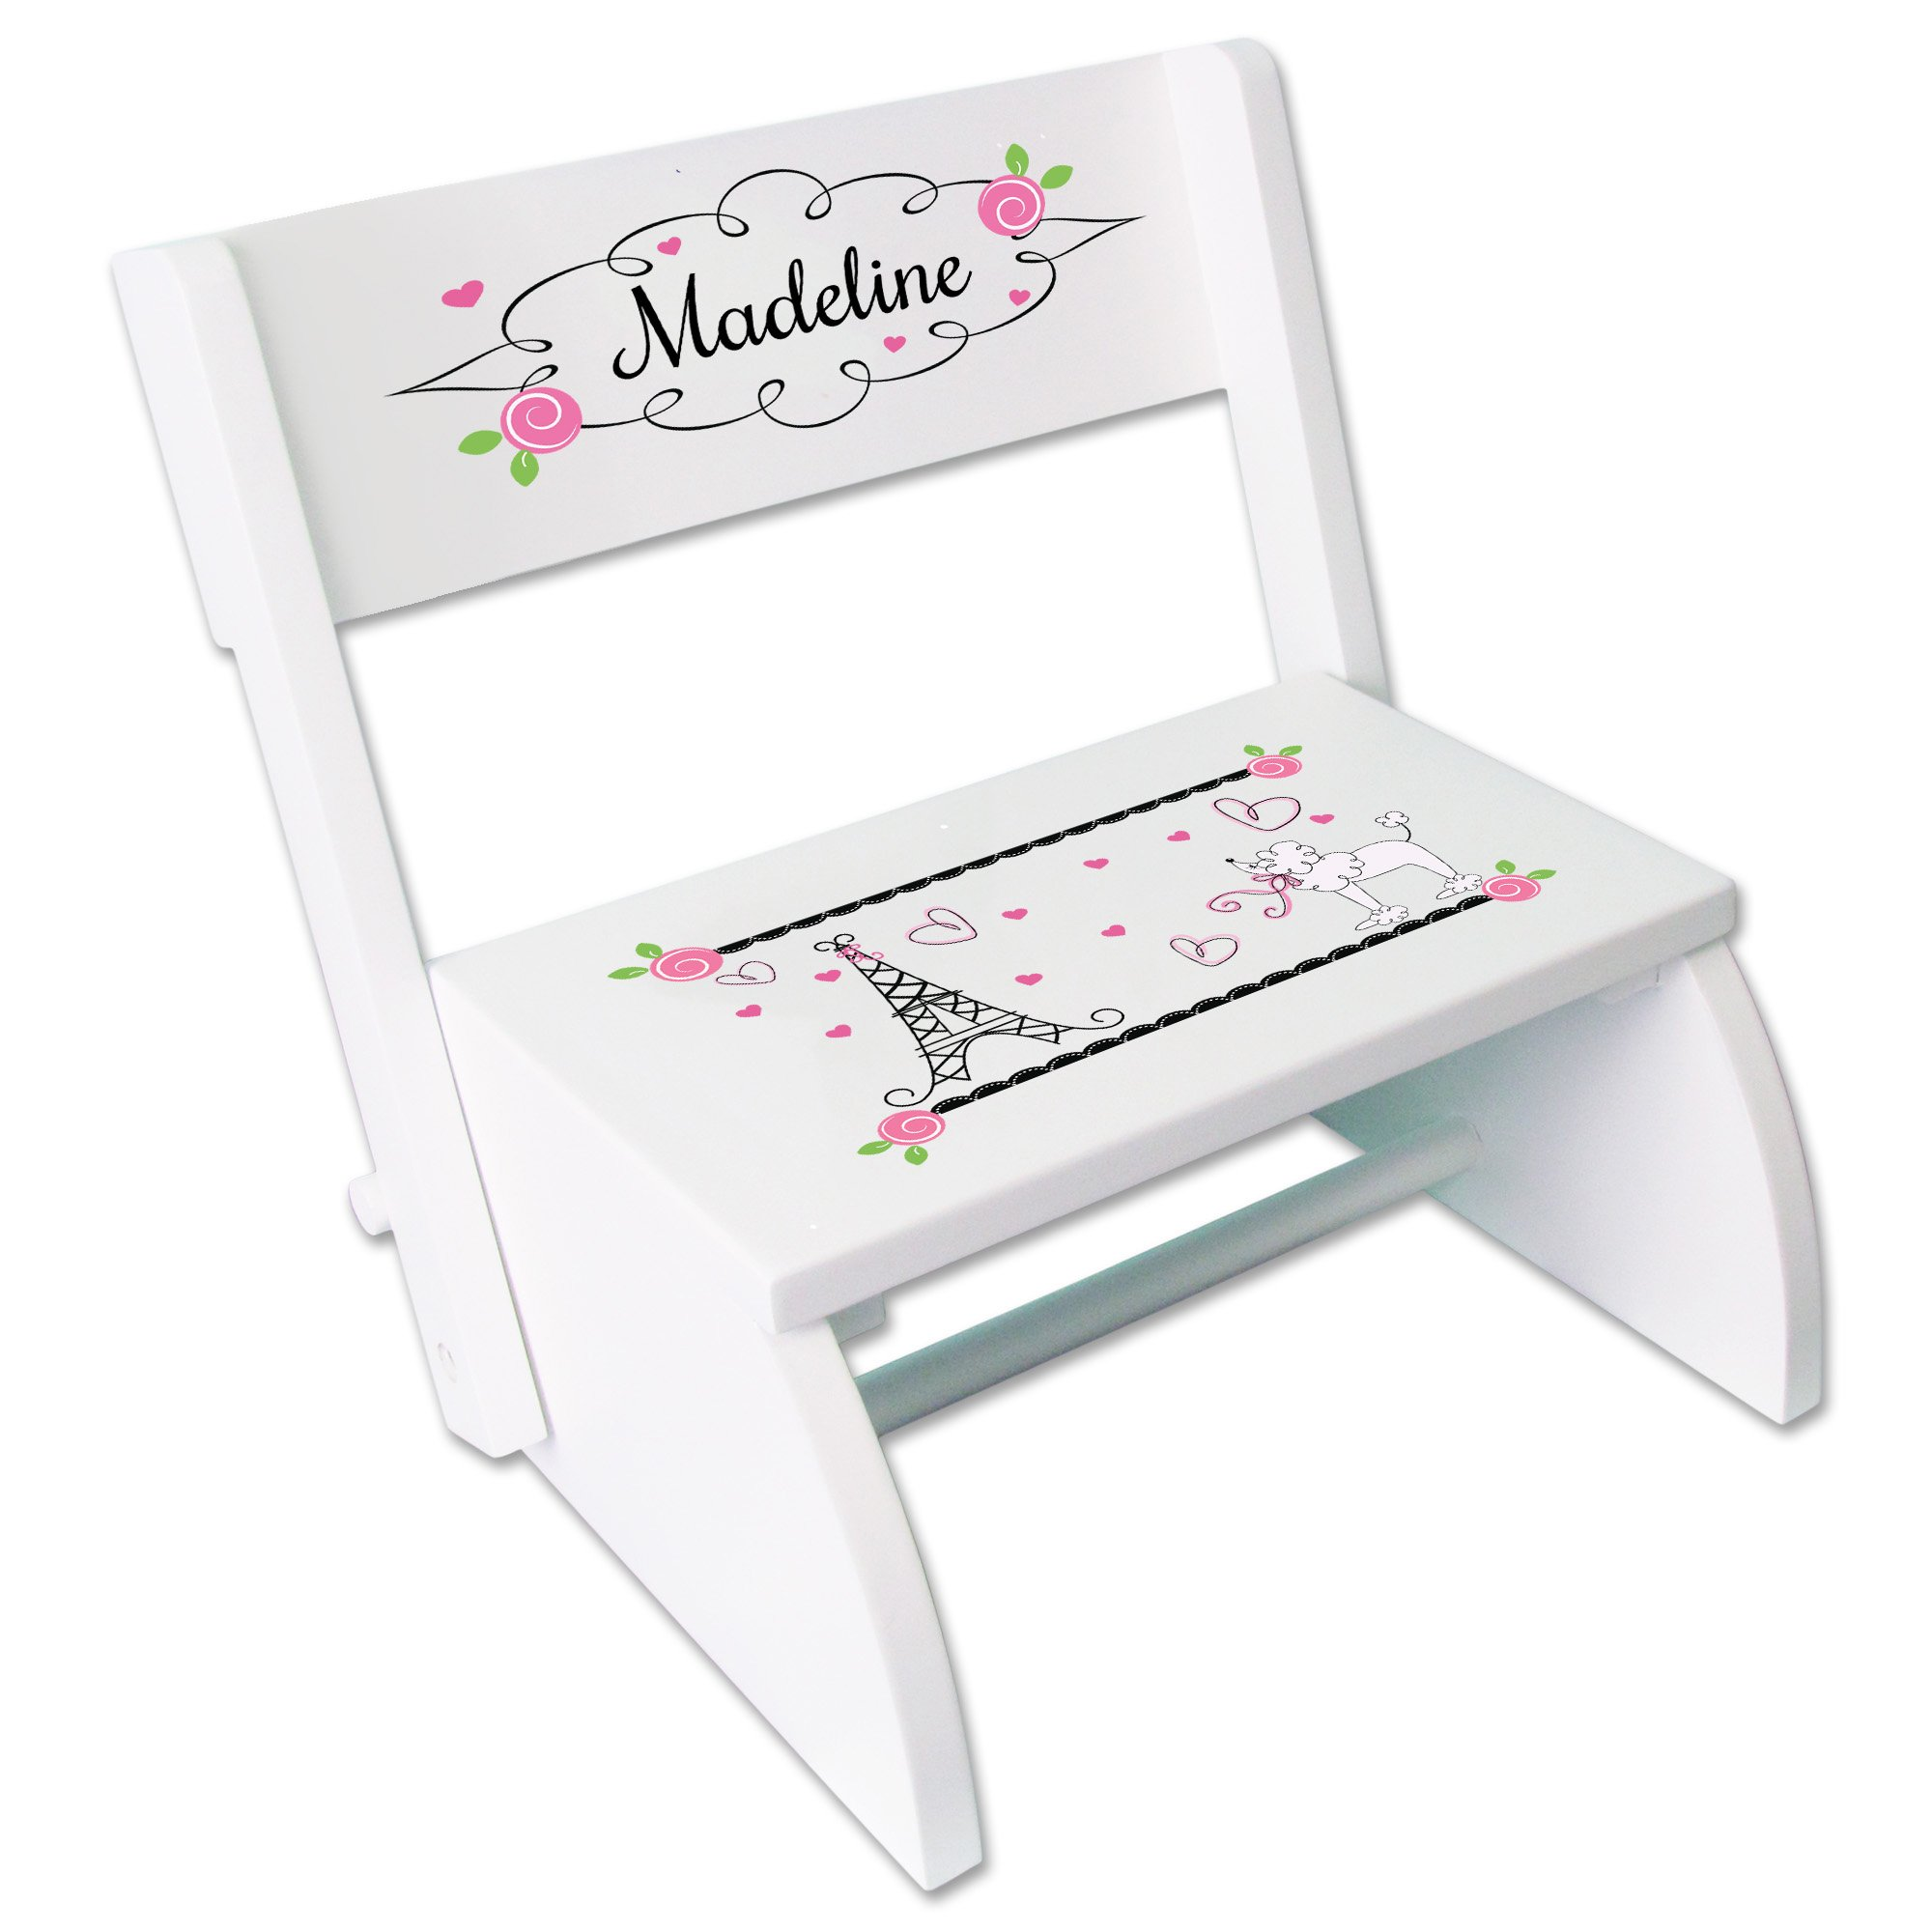 Personalized France Paris Childrens and Toddlers White folding stool